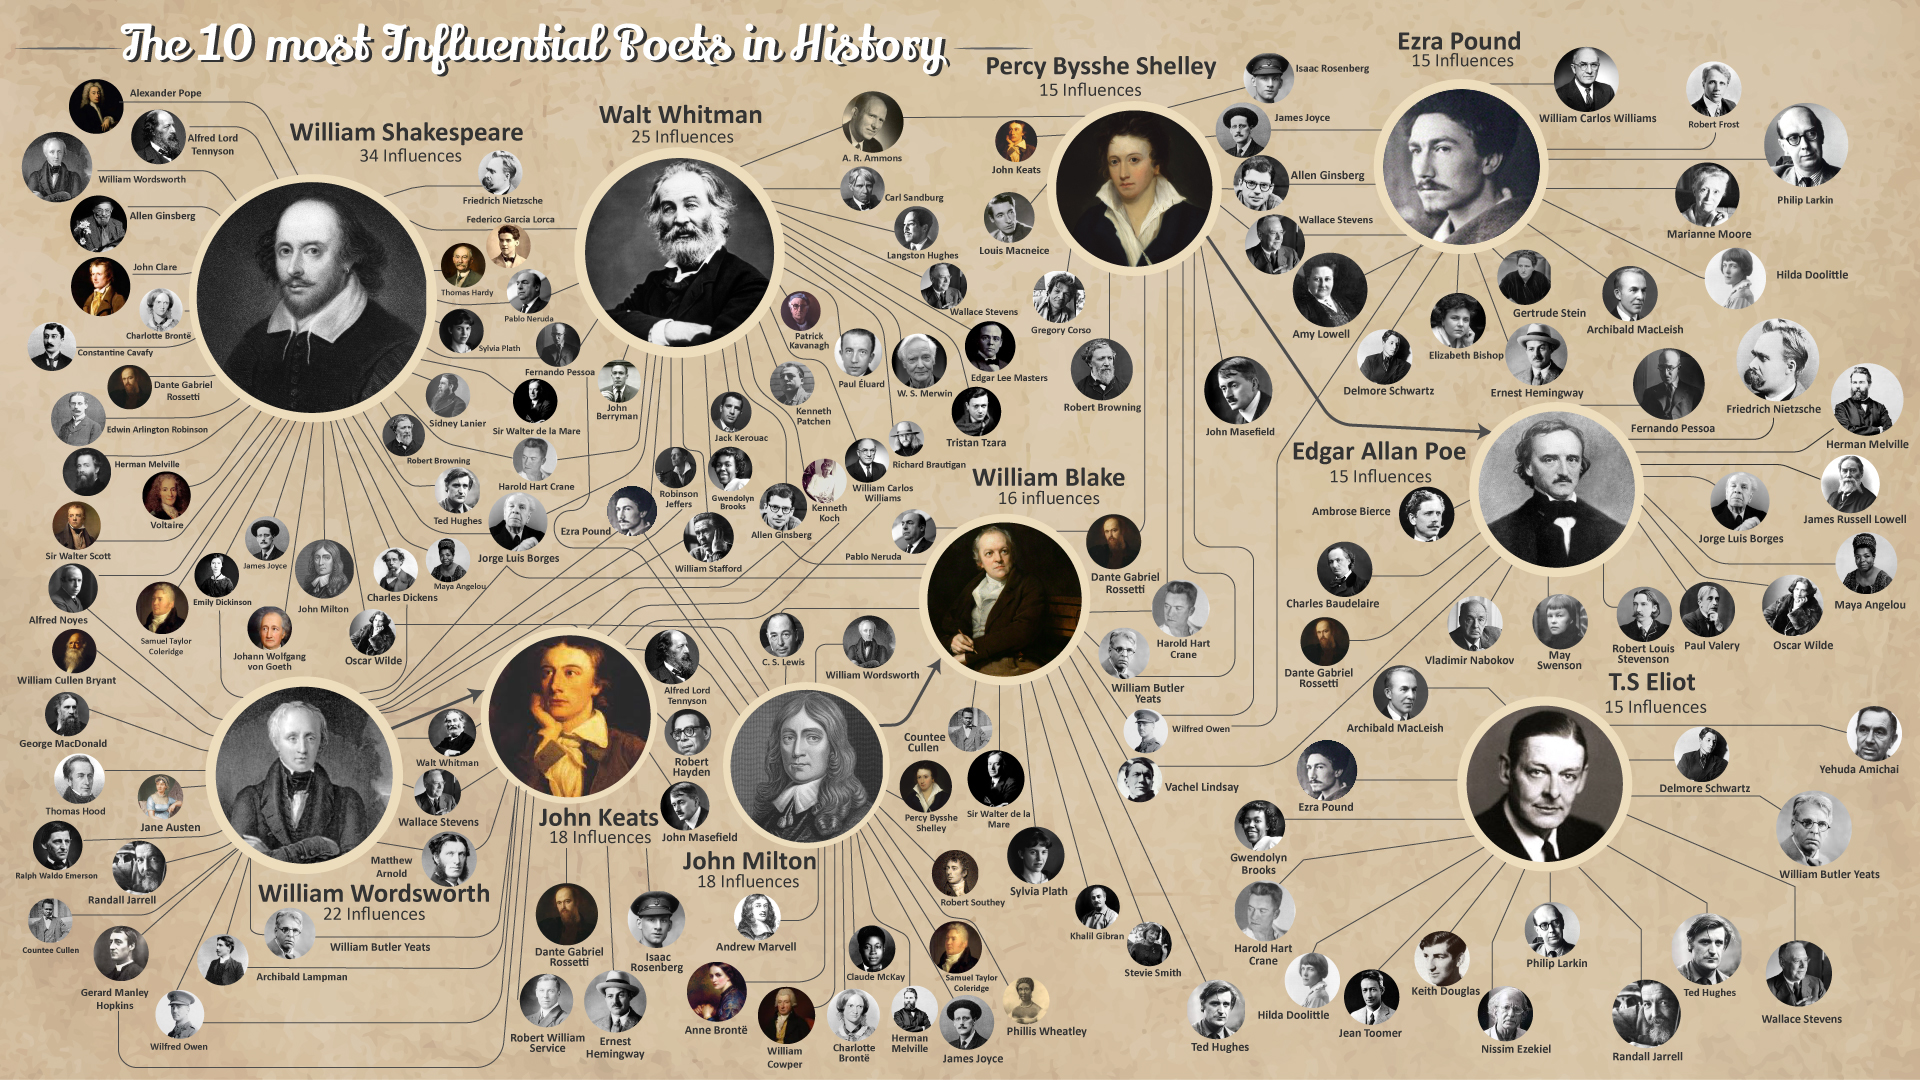 The 10 most Influential Poets in History